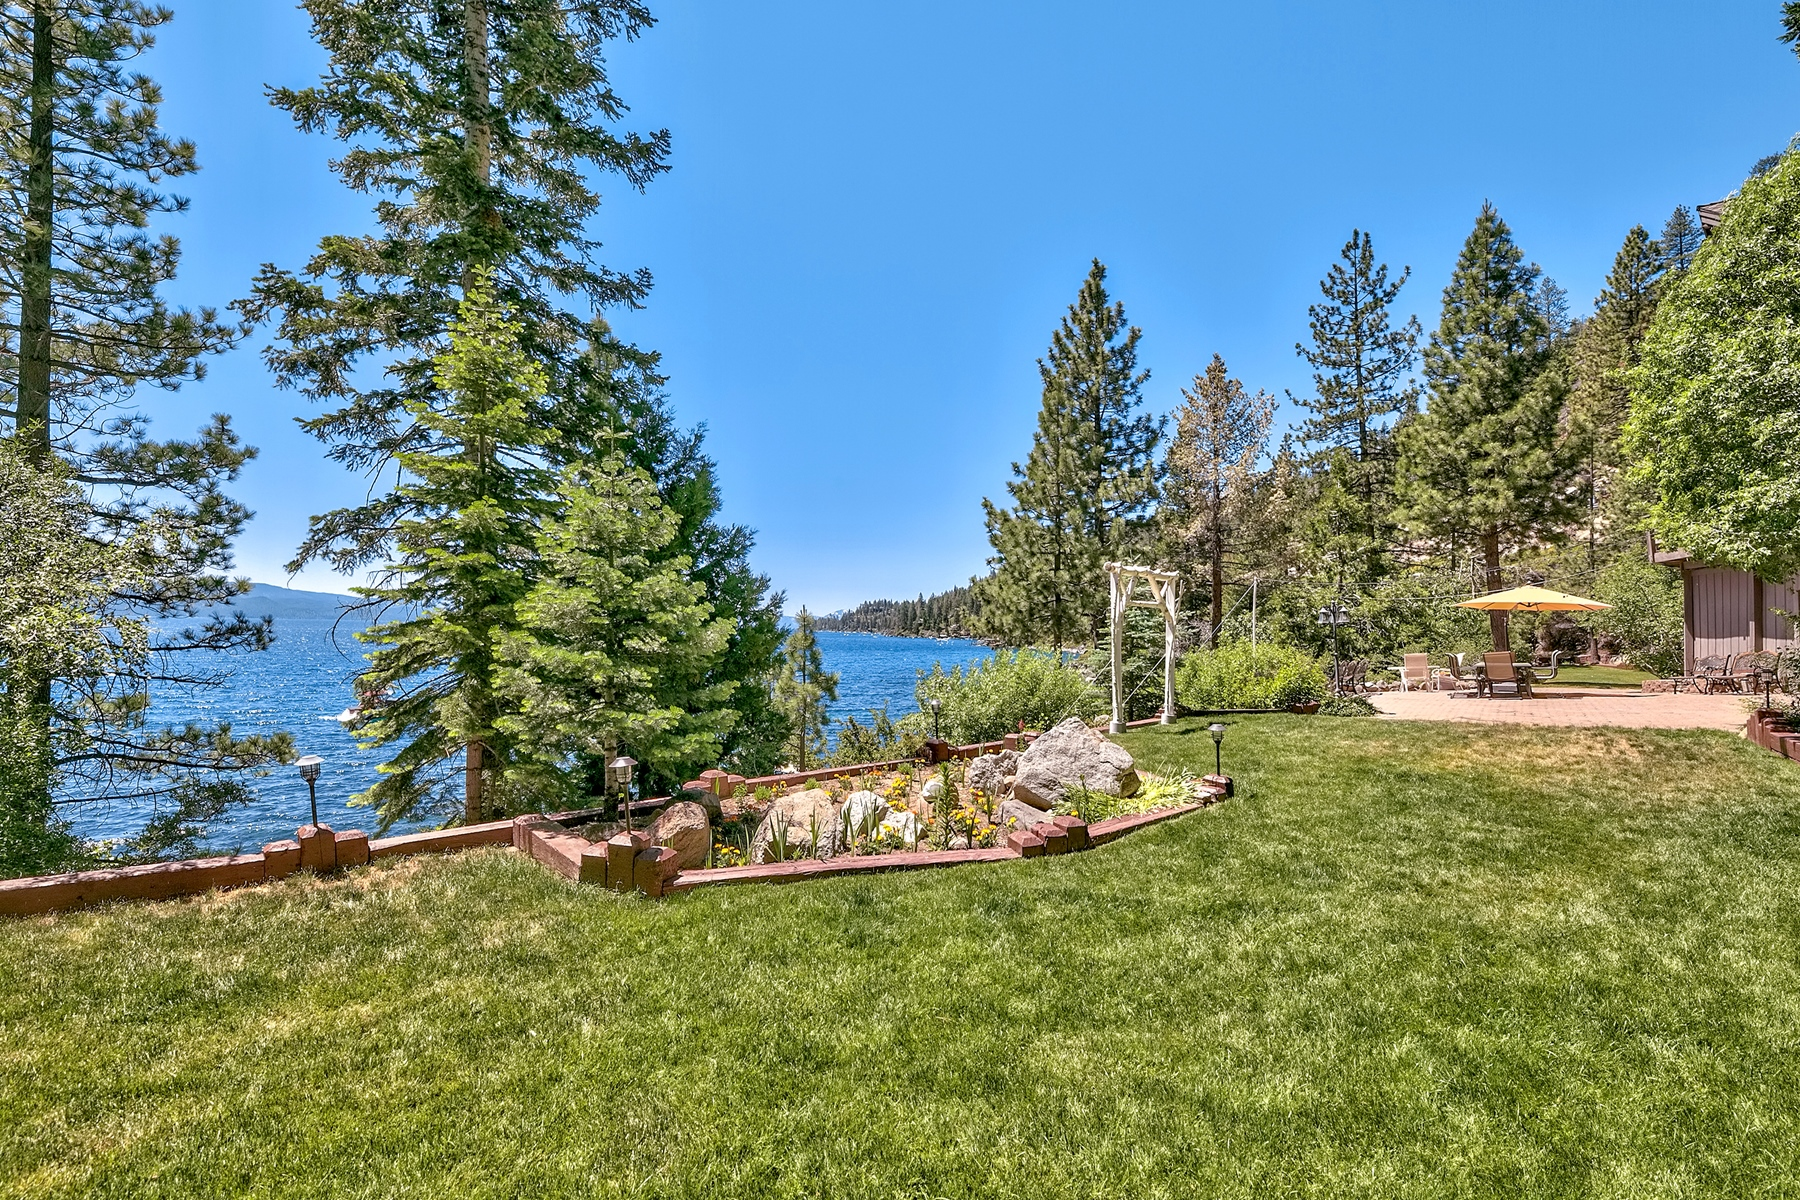 Additional photo for property listing at 453 Lakeshore Blvd., Incline Village, Nevada 453 Lakeshore Boulevard Incline Village, Nevada 89451 United States